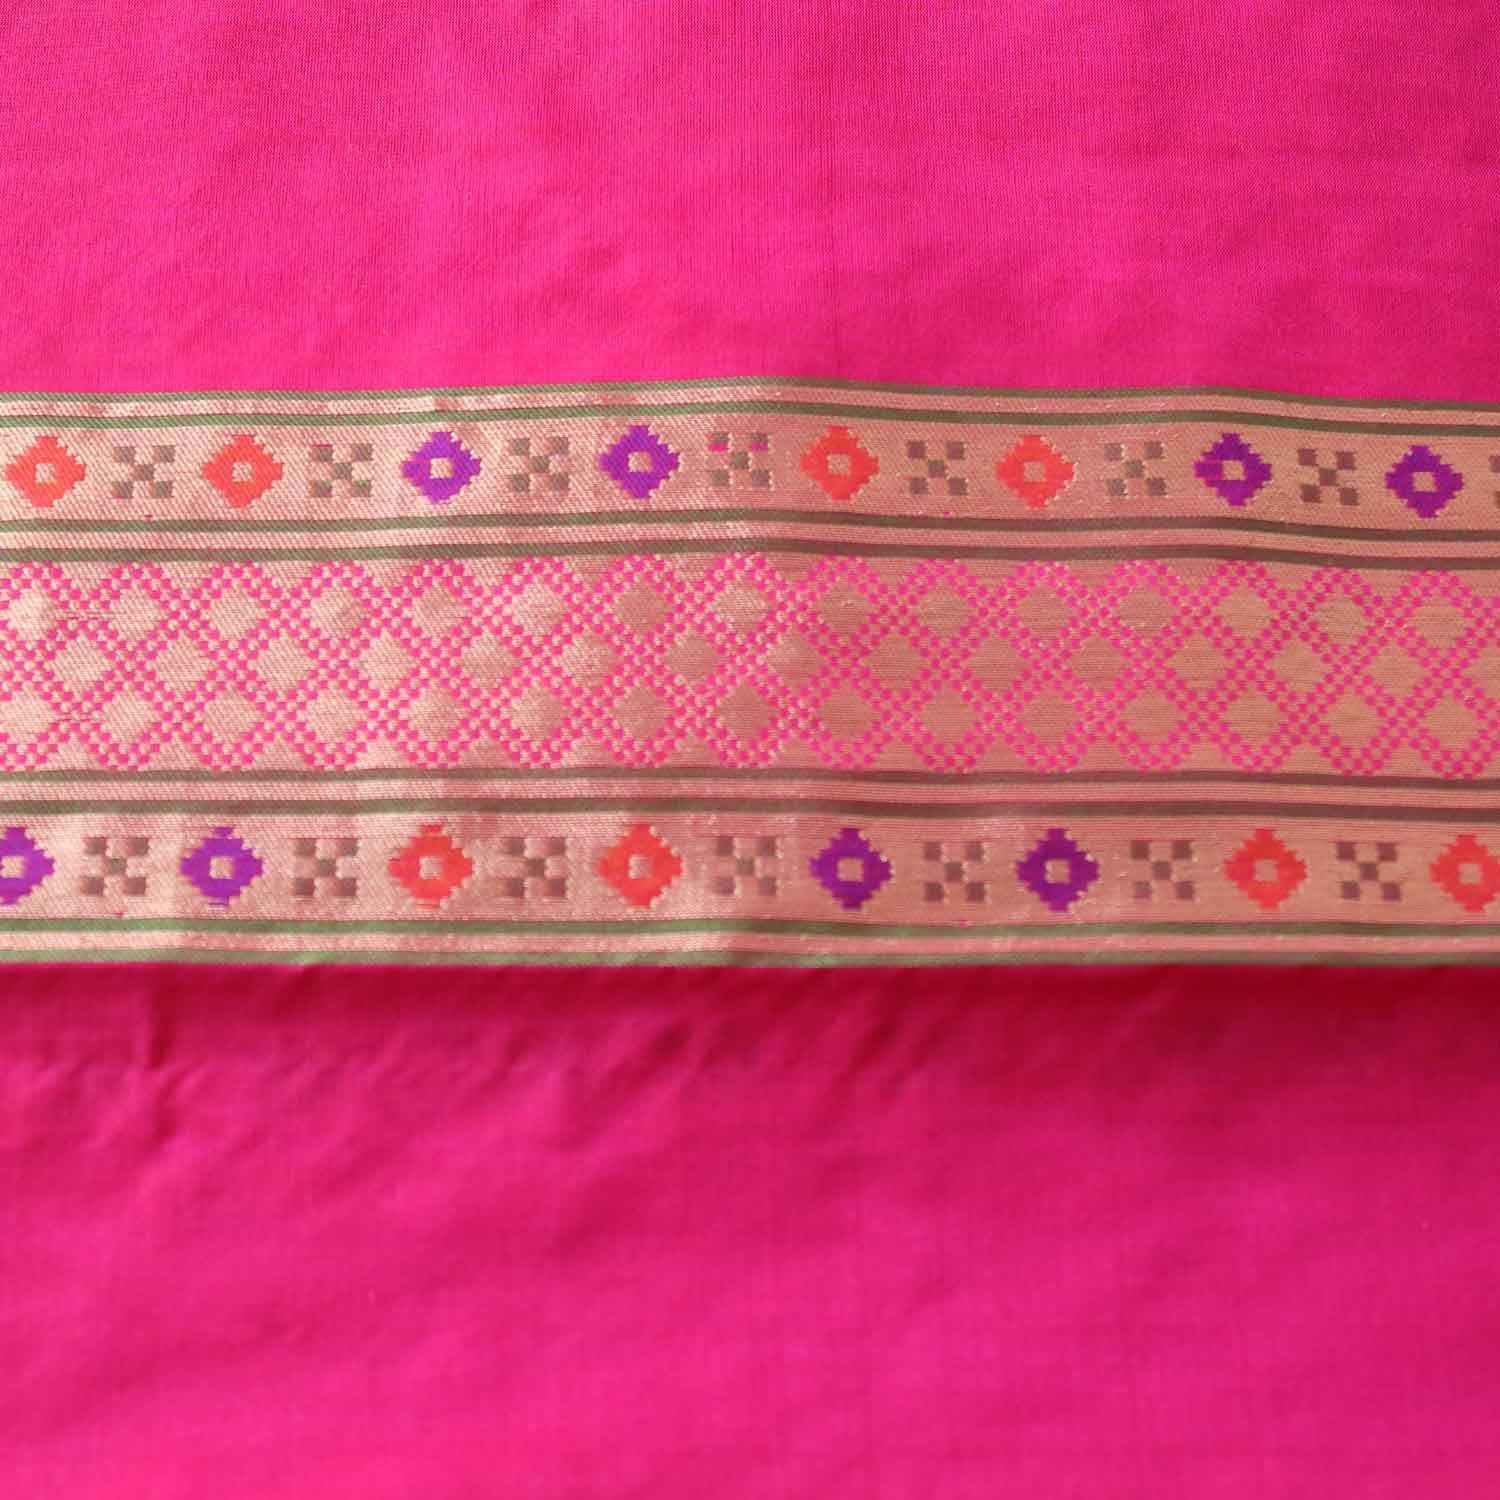 Indian Pink-Red Shot Color Pure Katan Silk Patola Banarasi Handloom Saree - Tilfi - 5